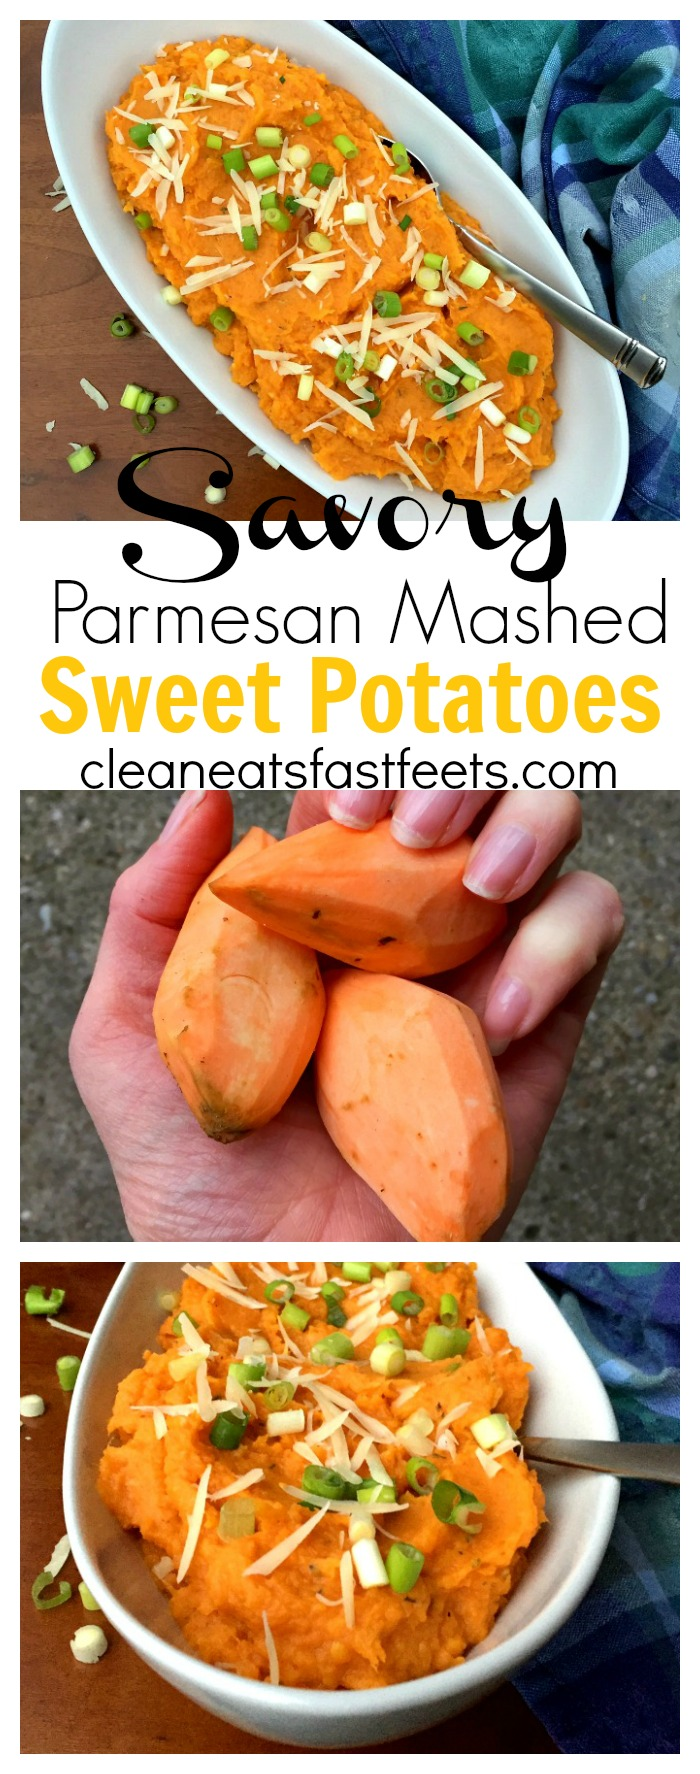 Savory Parmesan Mashed Sweet Potatoes. You want these on your table for Thanksgiving. You want these on your table for Christmas. You want these on your table, period. #thanksgiving #Christmas #sweetpotatoes #healthy